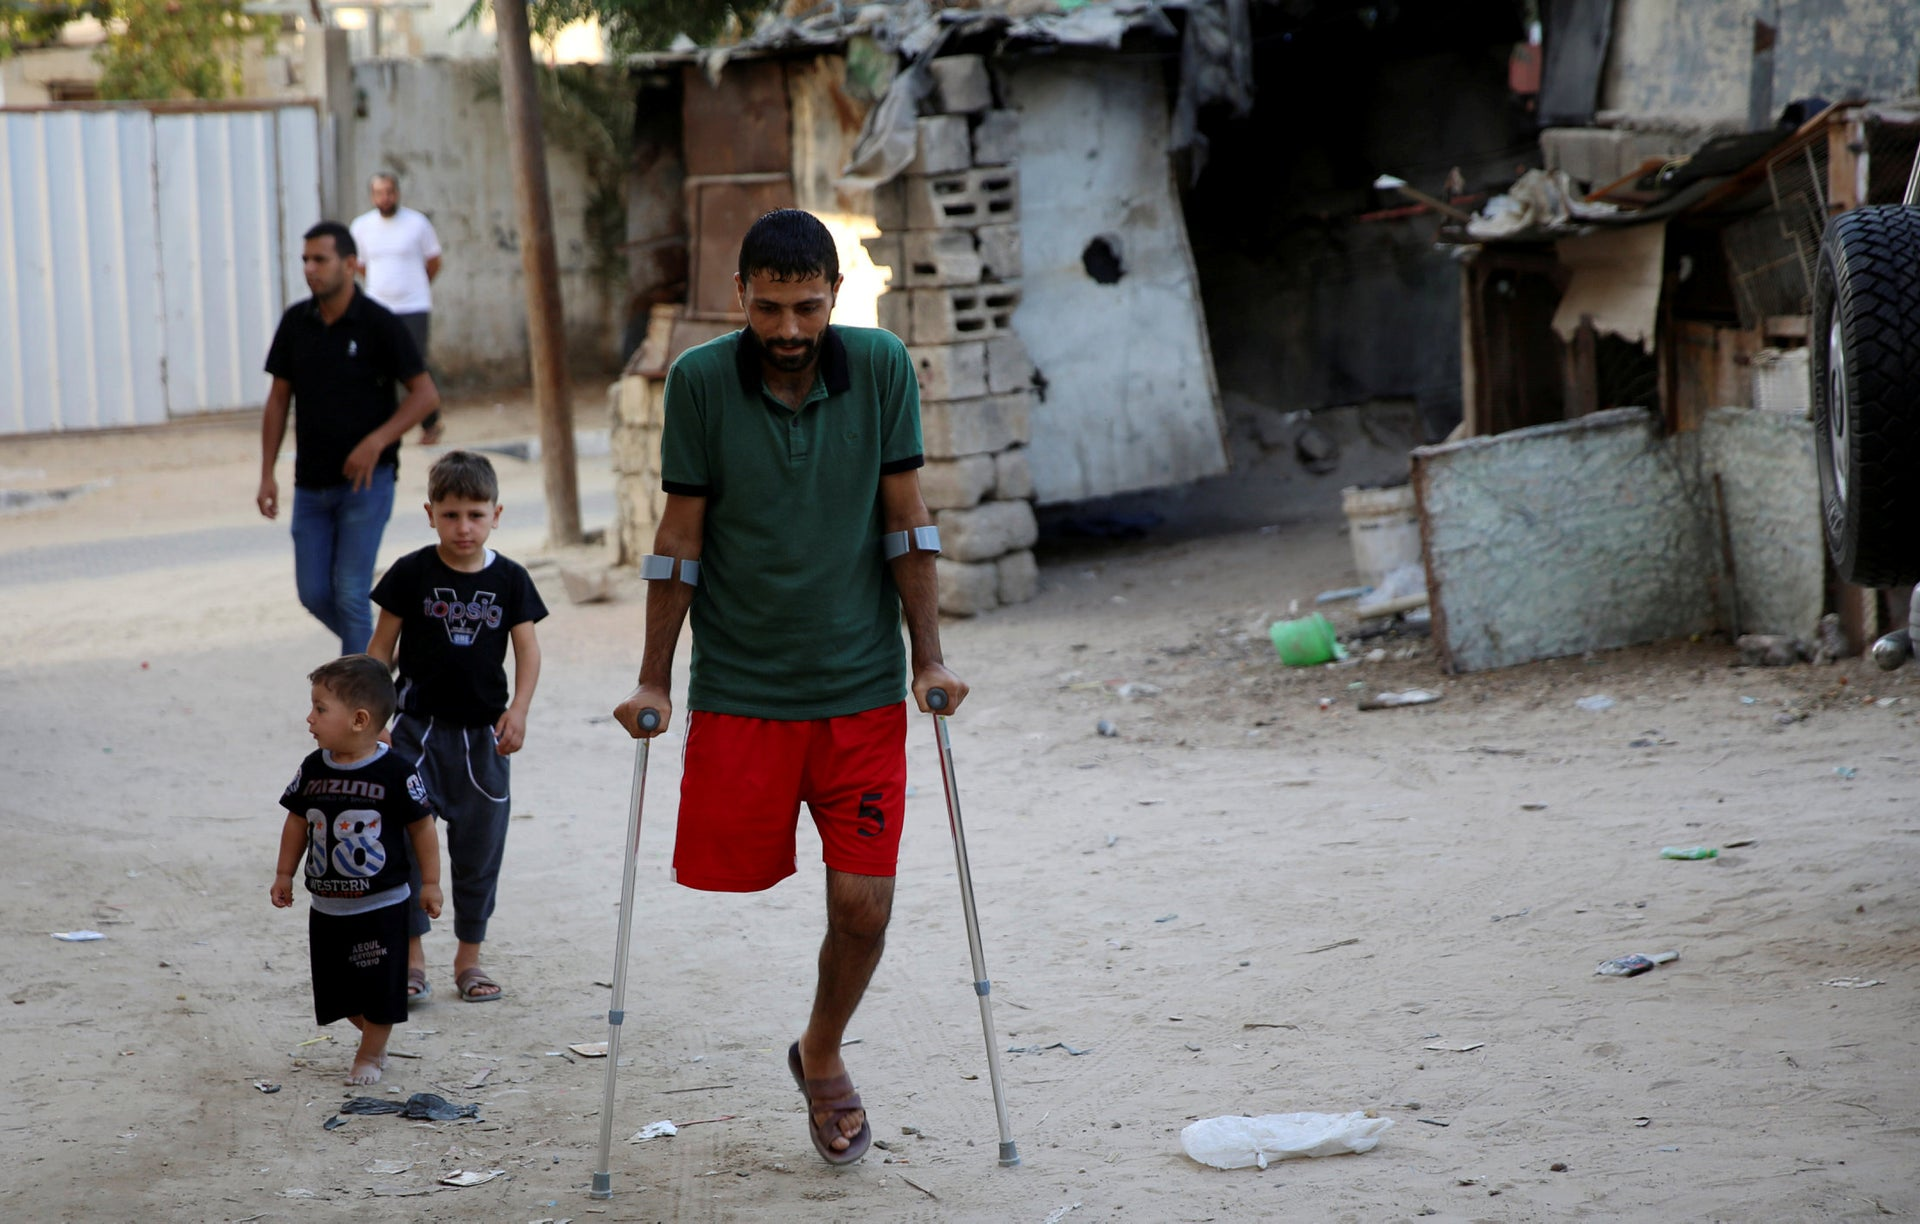 Palestinian amputee Ziad al-Madani, who lost his leg when he was shot by Israeli troops during a protest on the border, walks on the main street of Khan Younis, Gaza Strip, October 2, 2019.